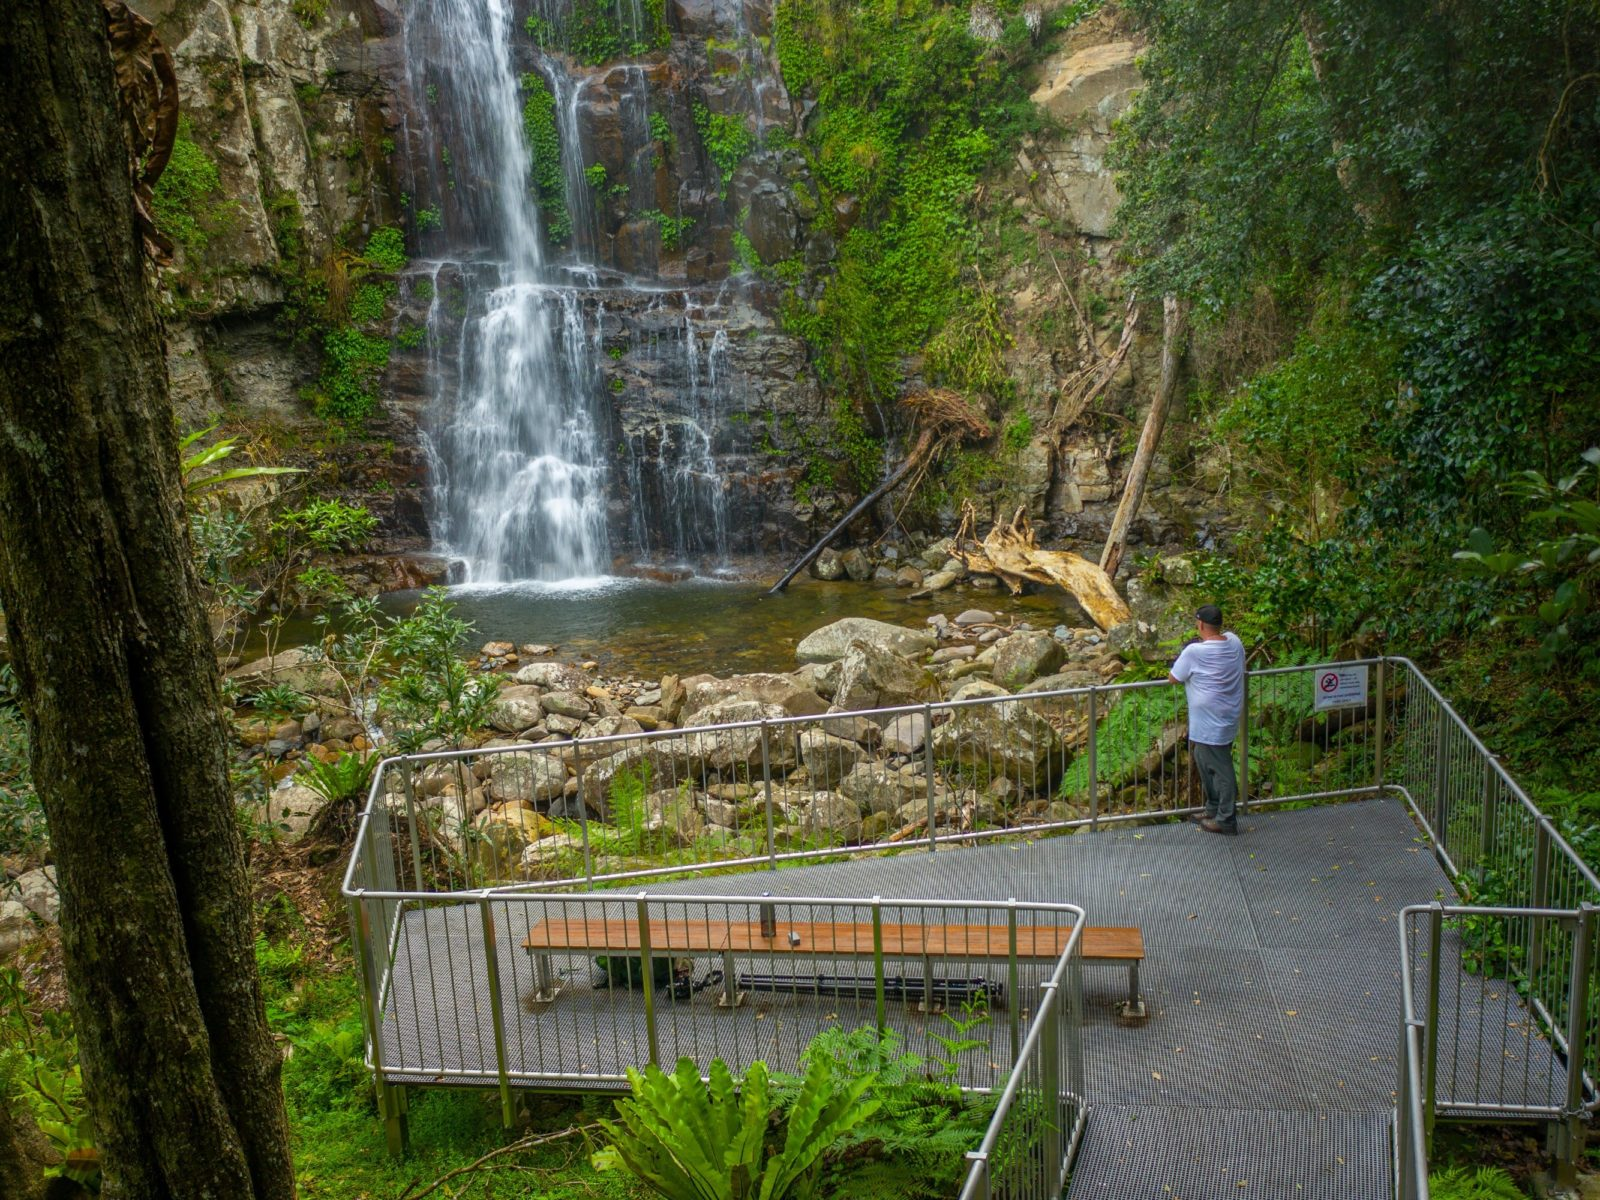 A man stands at a viewing platform along The Falls walk in Buderoo National Park.